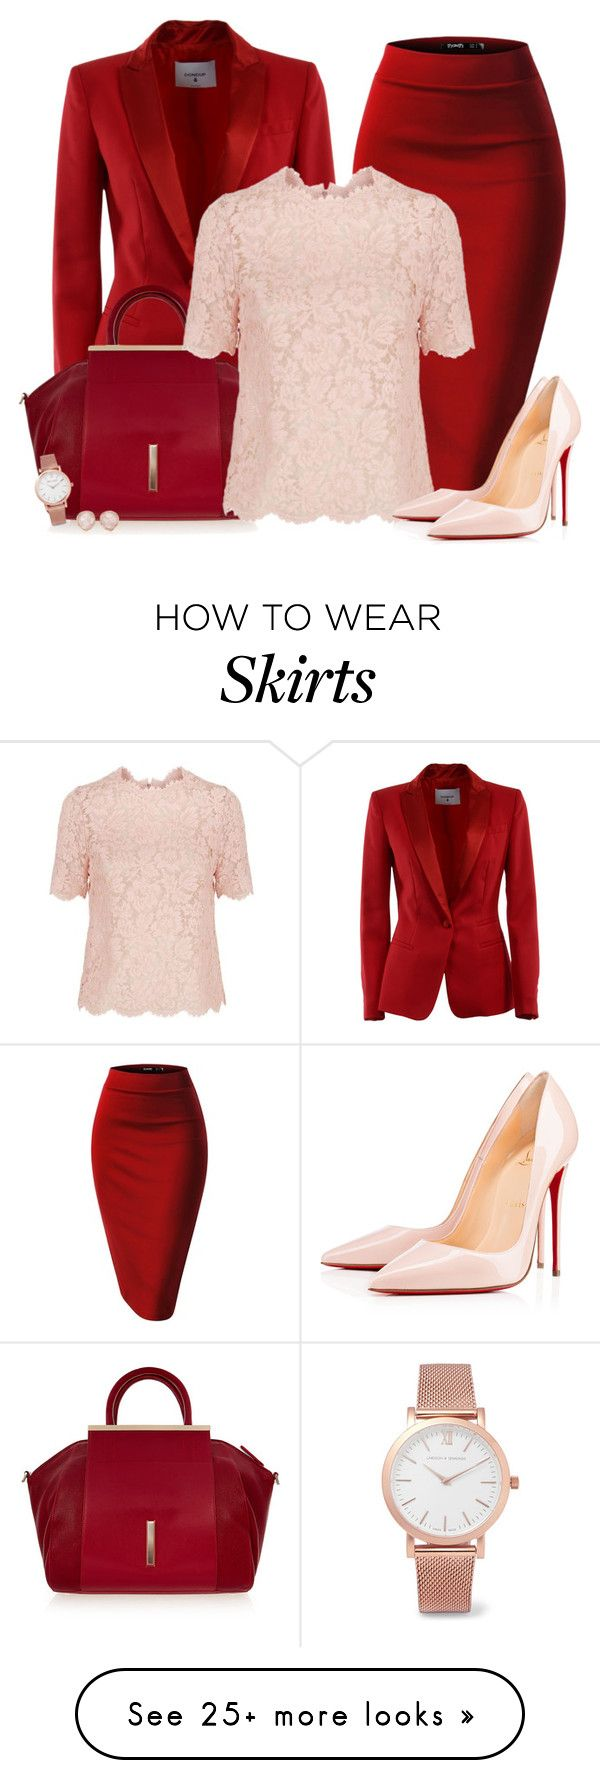 Trend To Wear: Skirts Sets